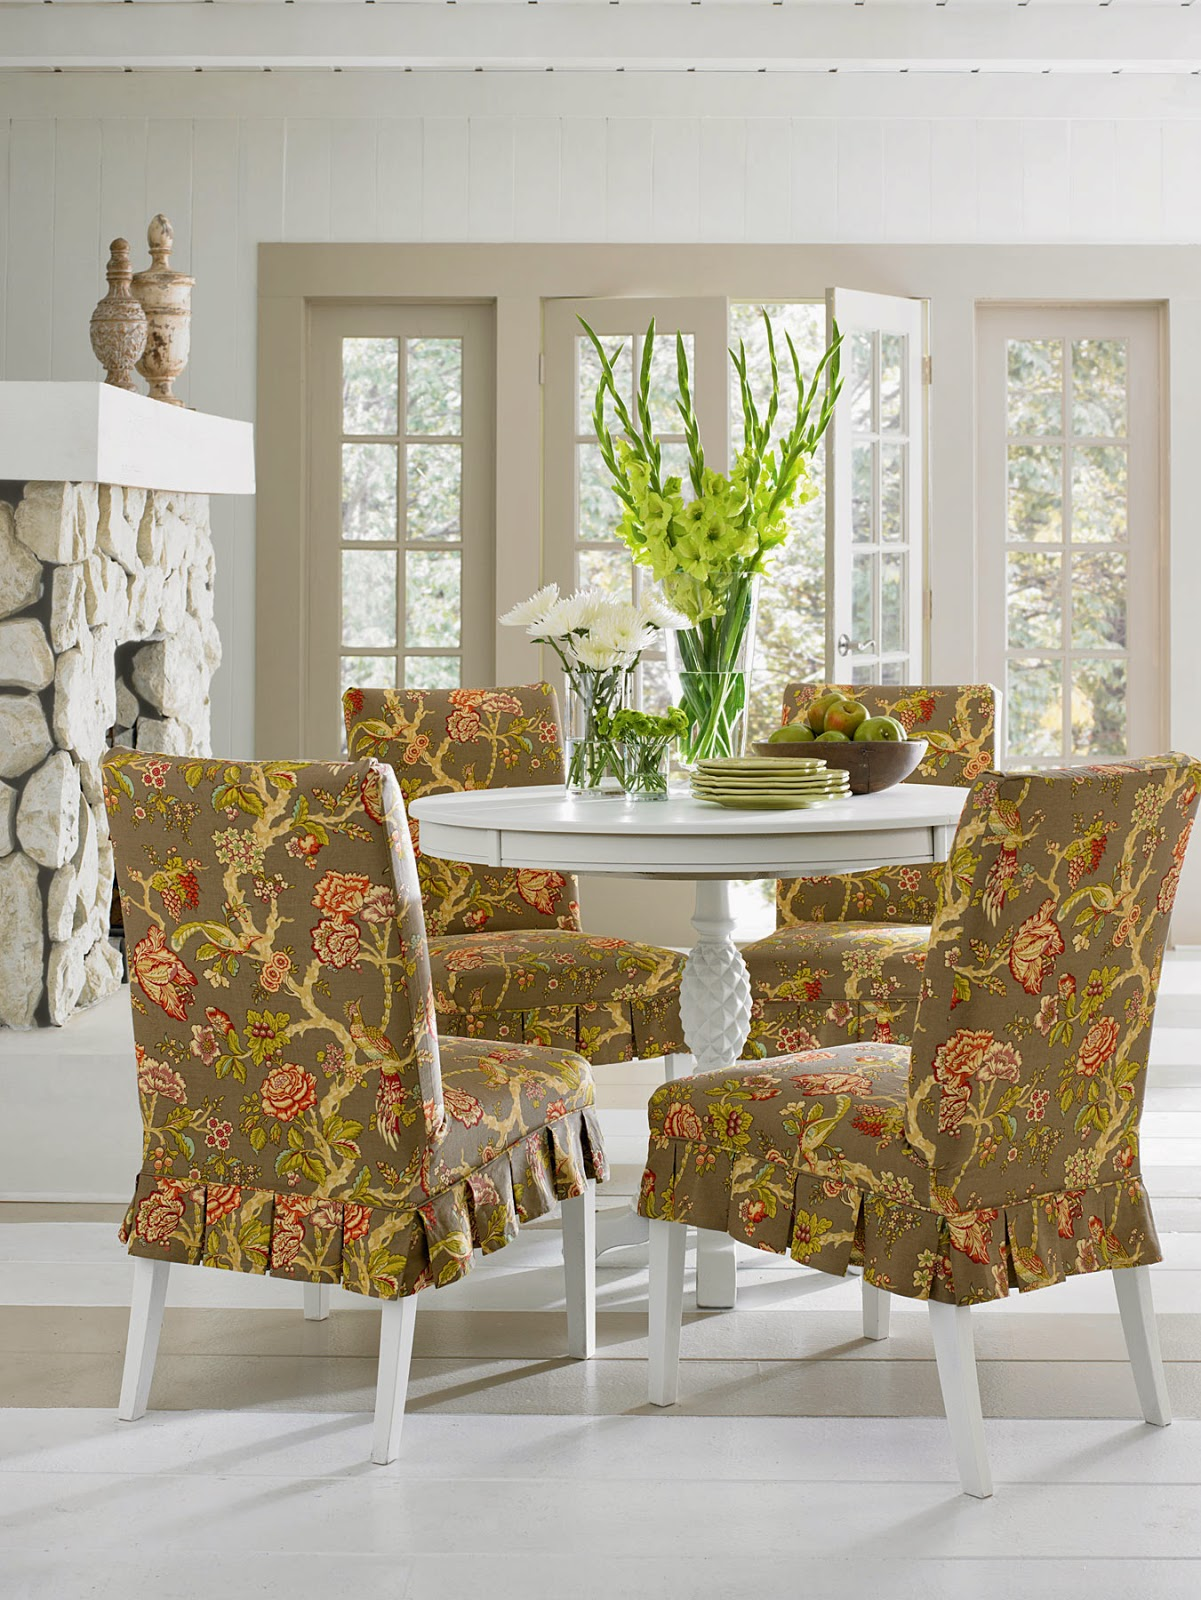 Slipcovers For Dining Room Chairs Sure Fit Slipcovers Super Easy Way To Pretty Up Those